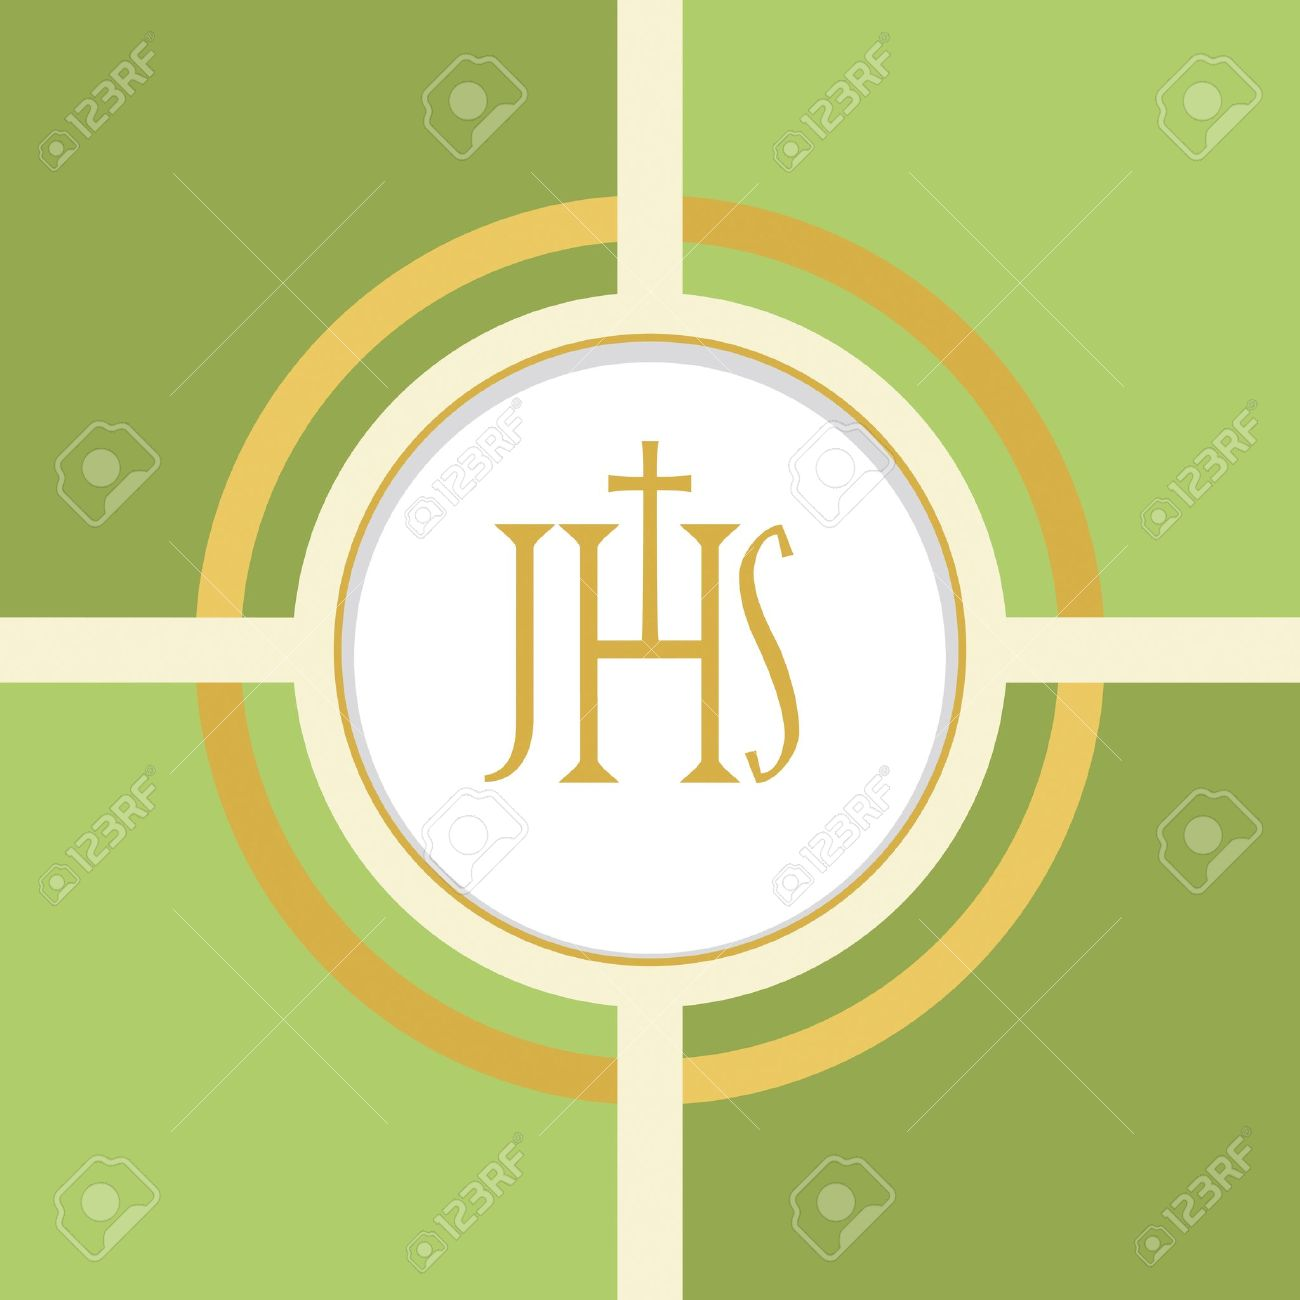 Christian symbol of the eucharist royalty free cliparts vectors christian symbol of the eucharist stock vector 11779822 biocorpaavc Image collections